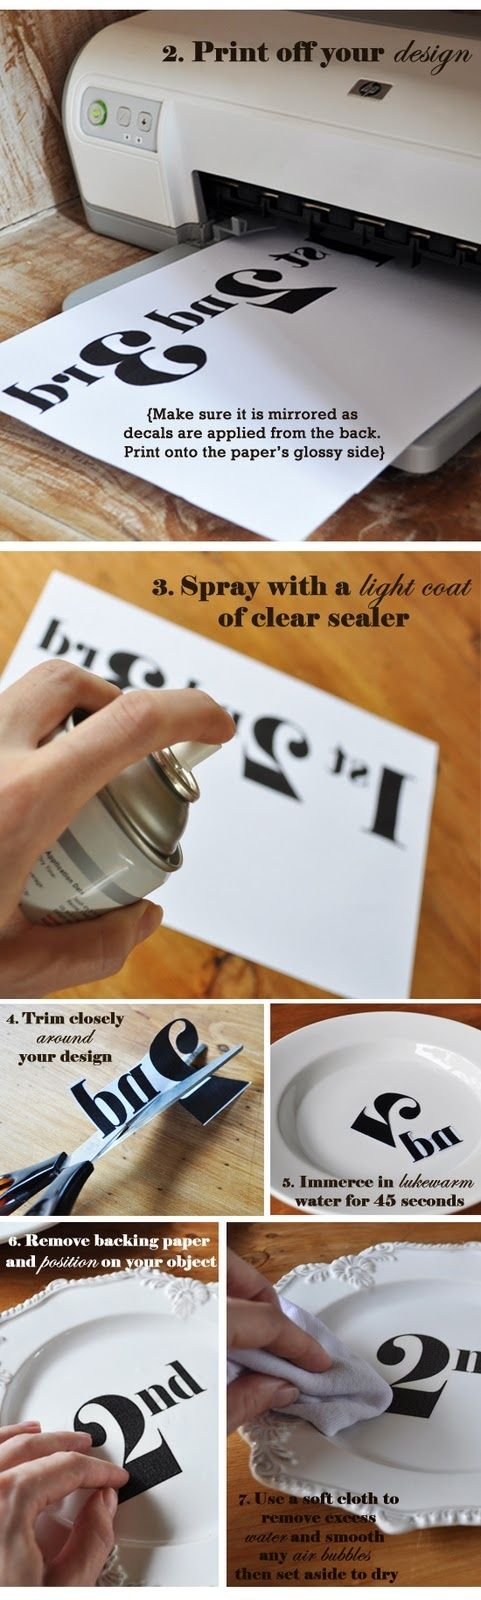 DIY Transfer Decal Tutorial - All you need is some waterslide decal paper and a printer (plus a cute design of course!).